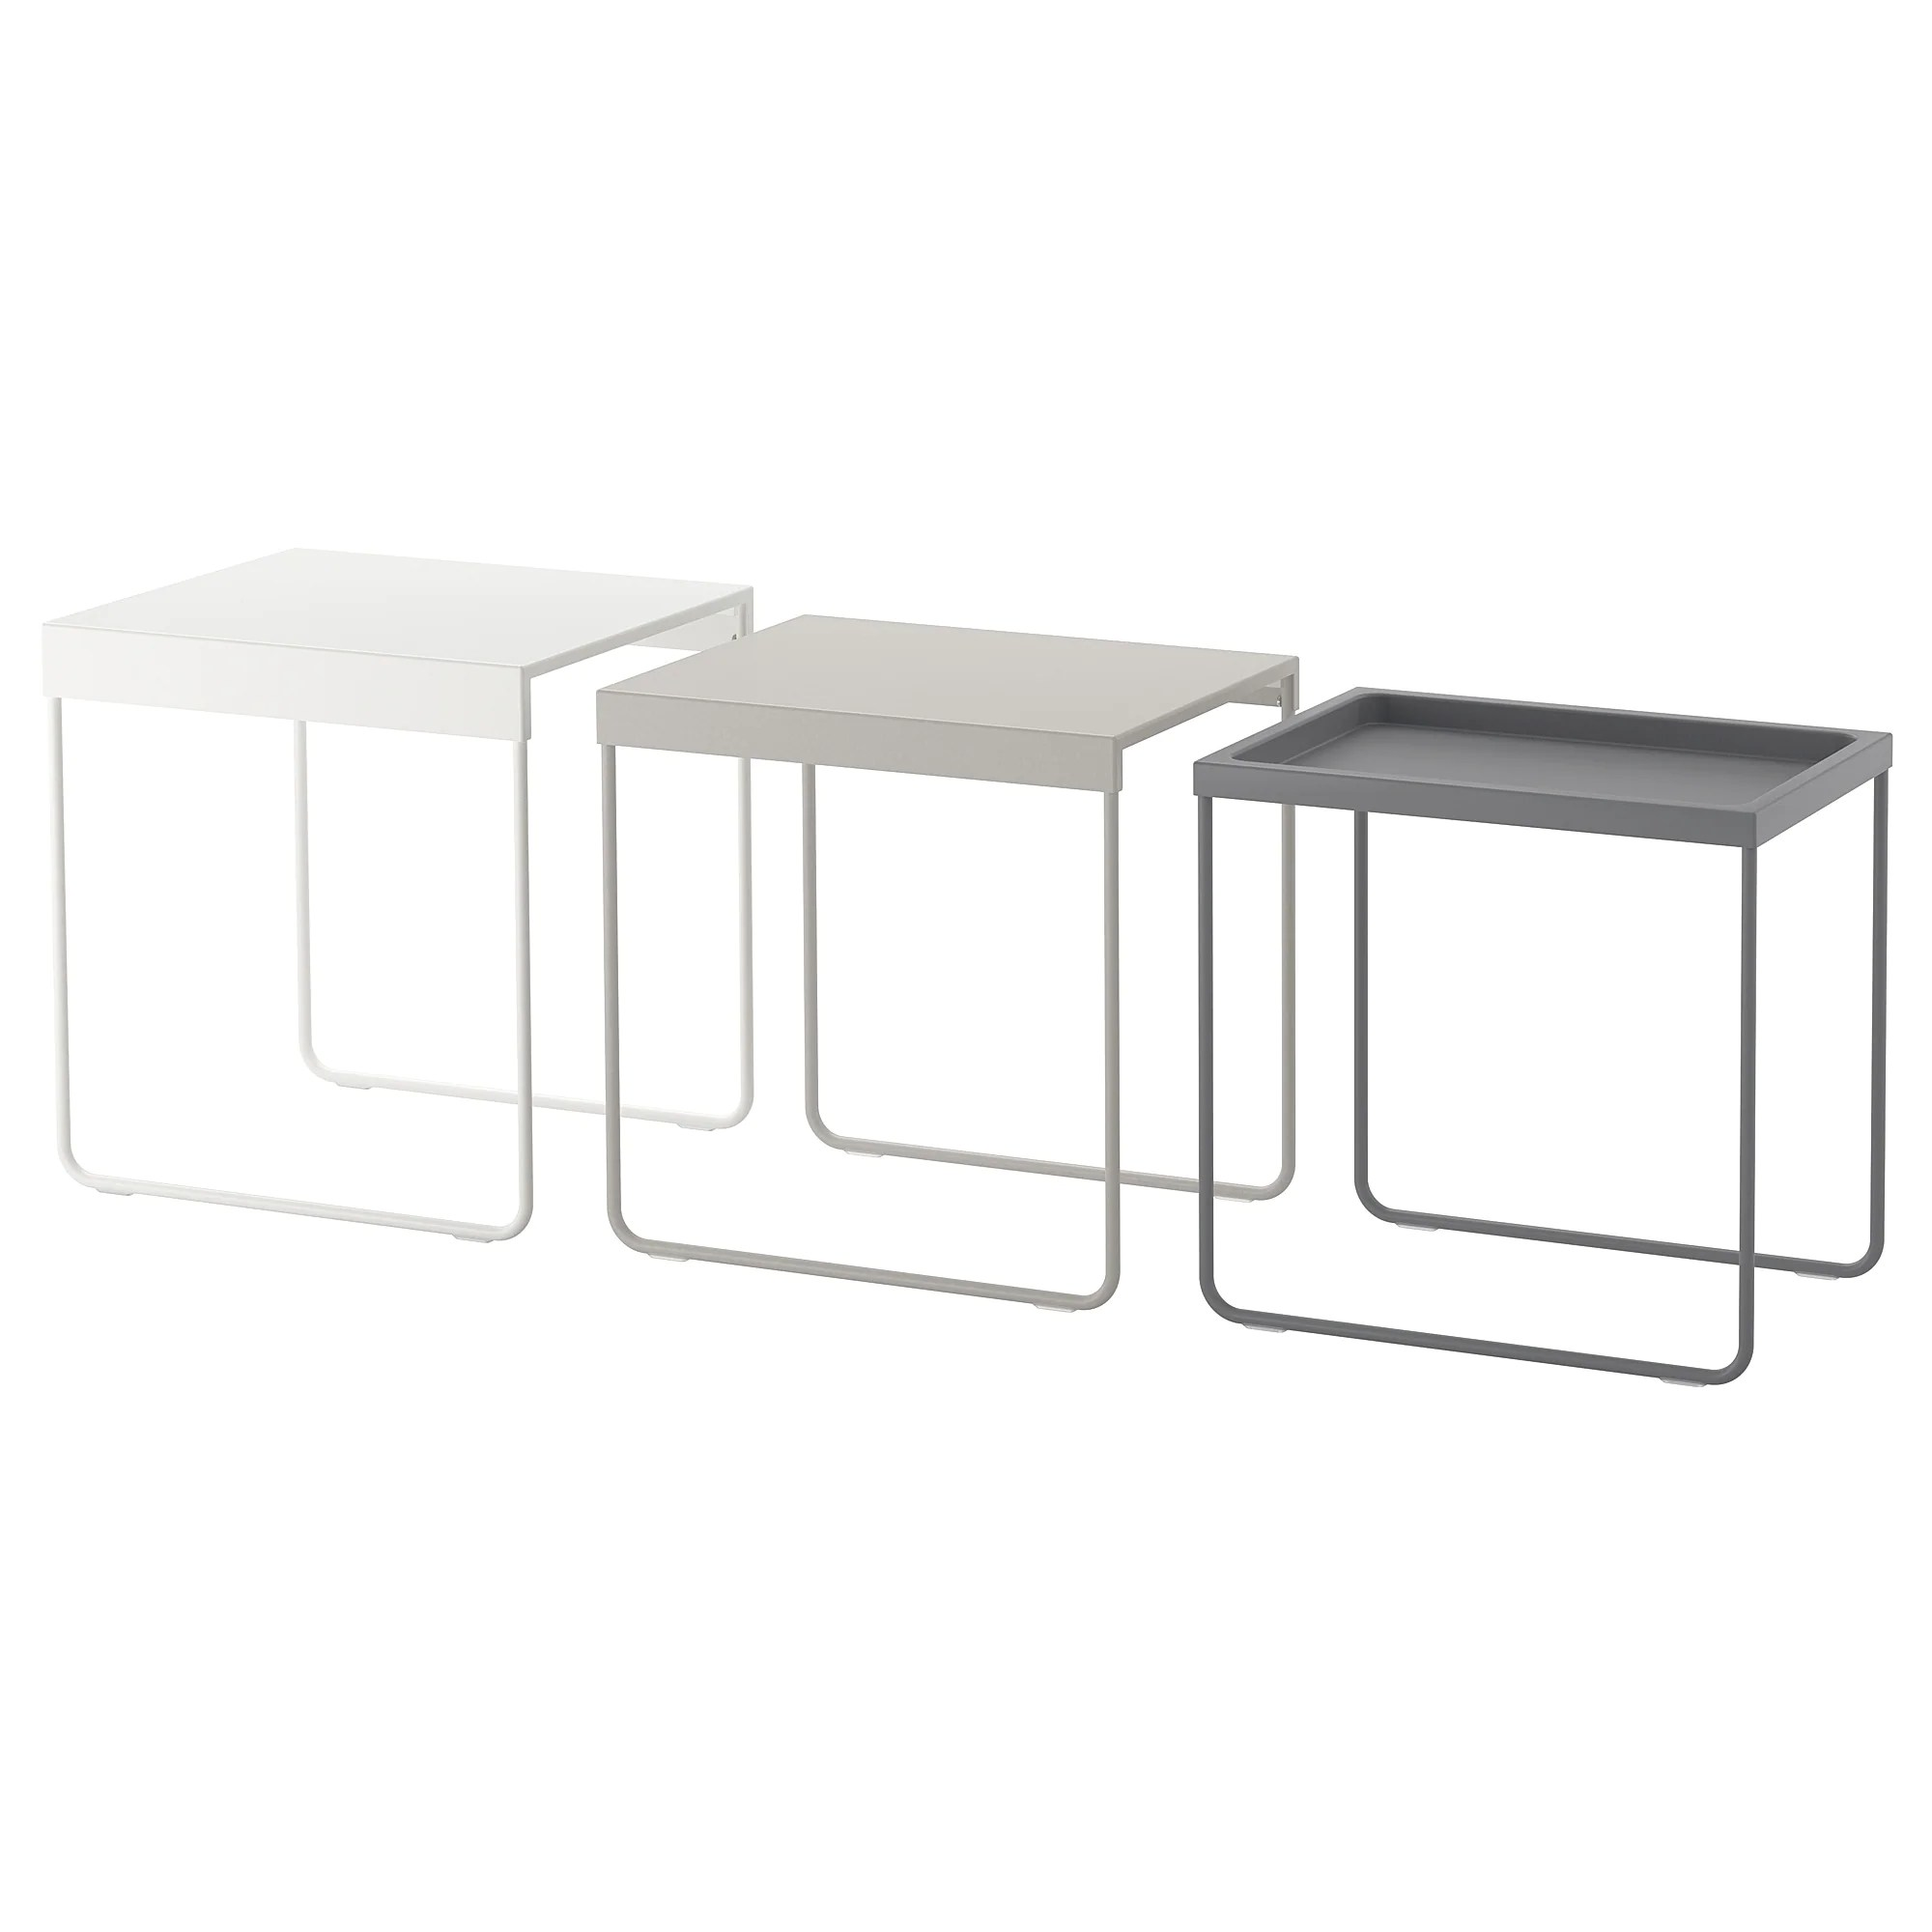 Ikea Freiburg Jobs Granboda Nesting Tables Set Of 3